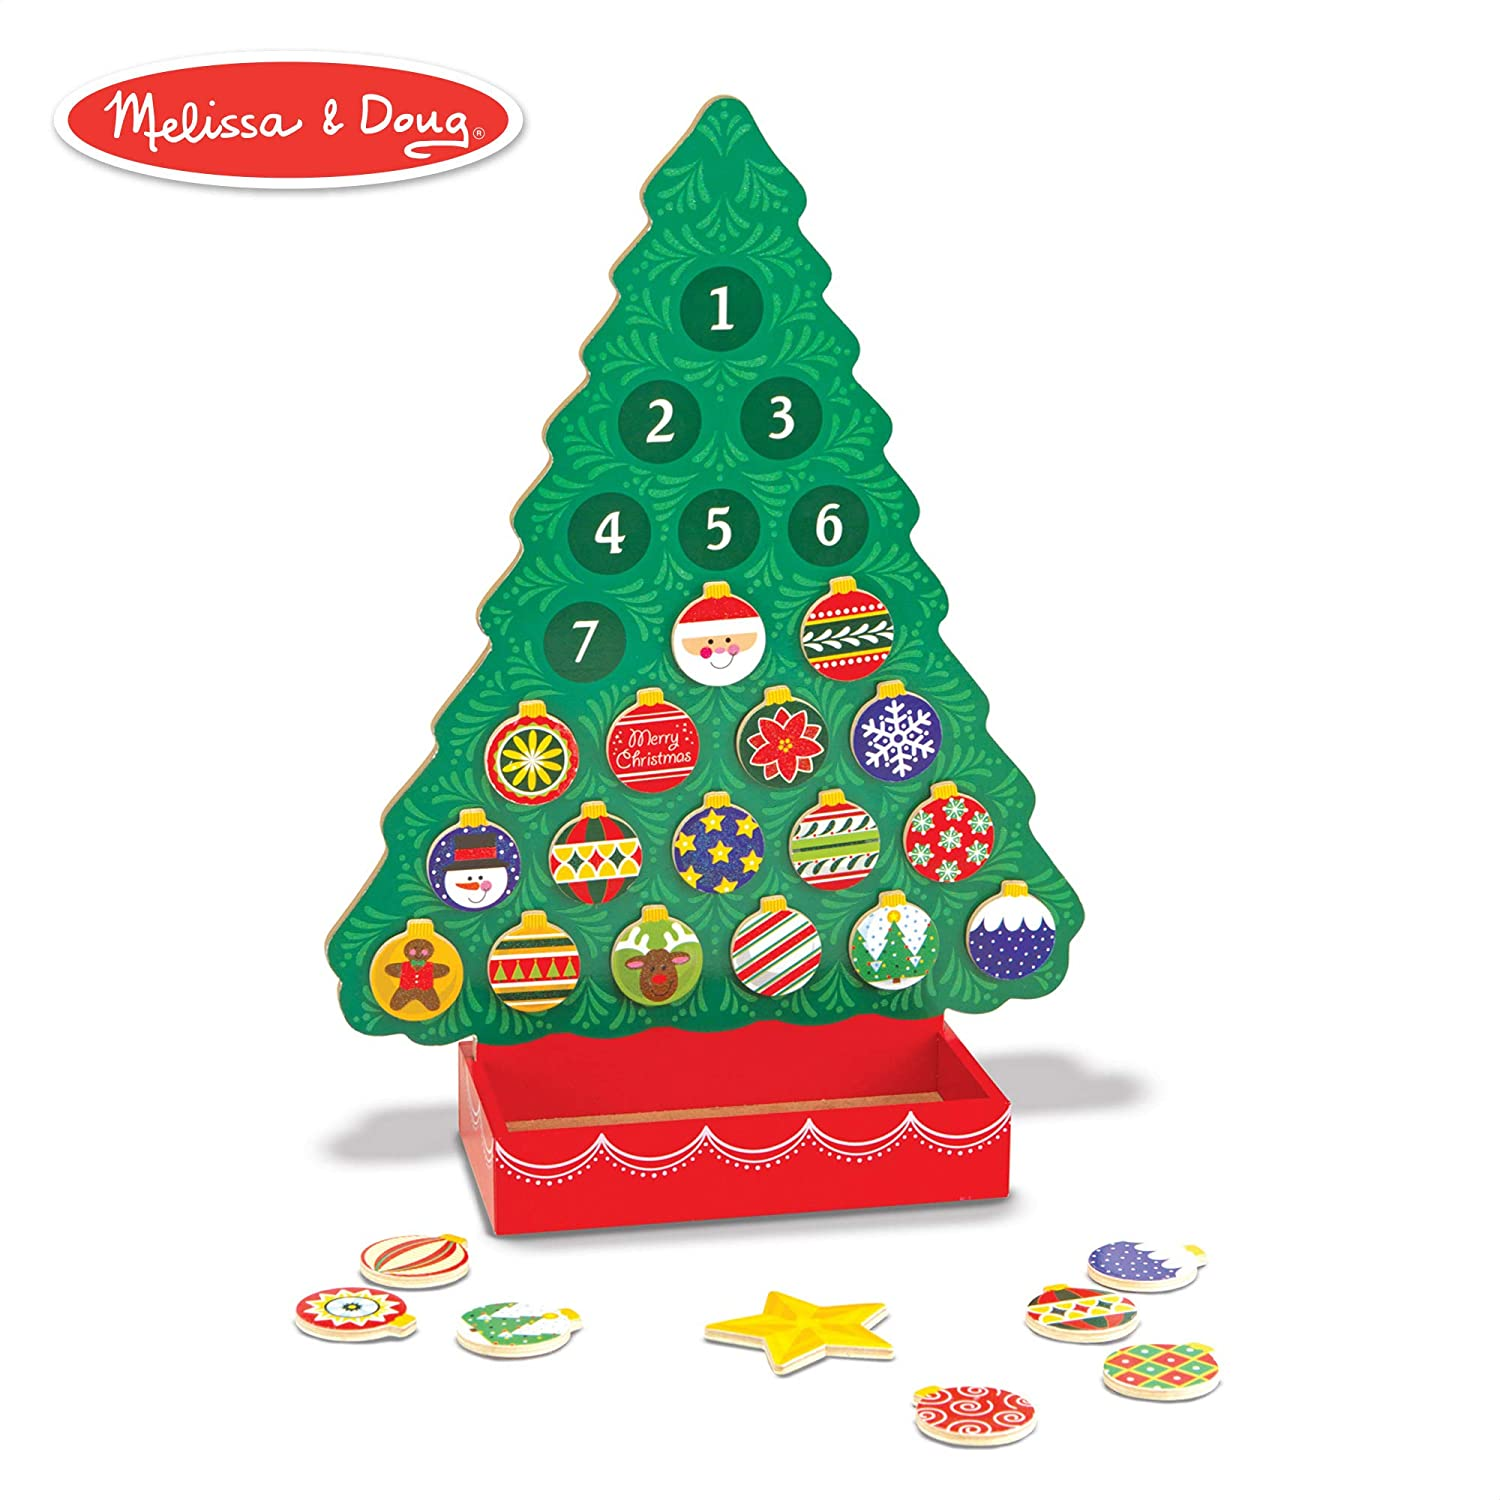 Christmas Countdown Calendar.Melissa Doug Countdown To Christmas Wooden Advent Calendar Seasonal Religious Magnetic Tree 25 Magnets